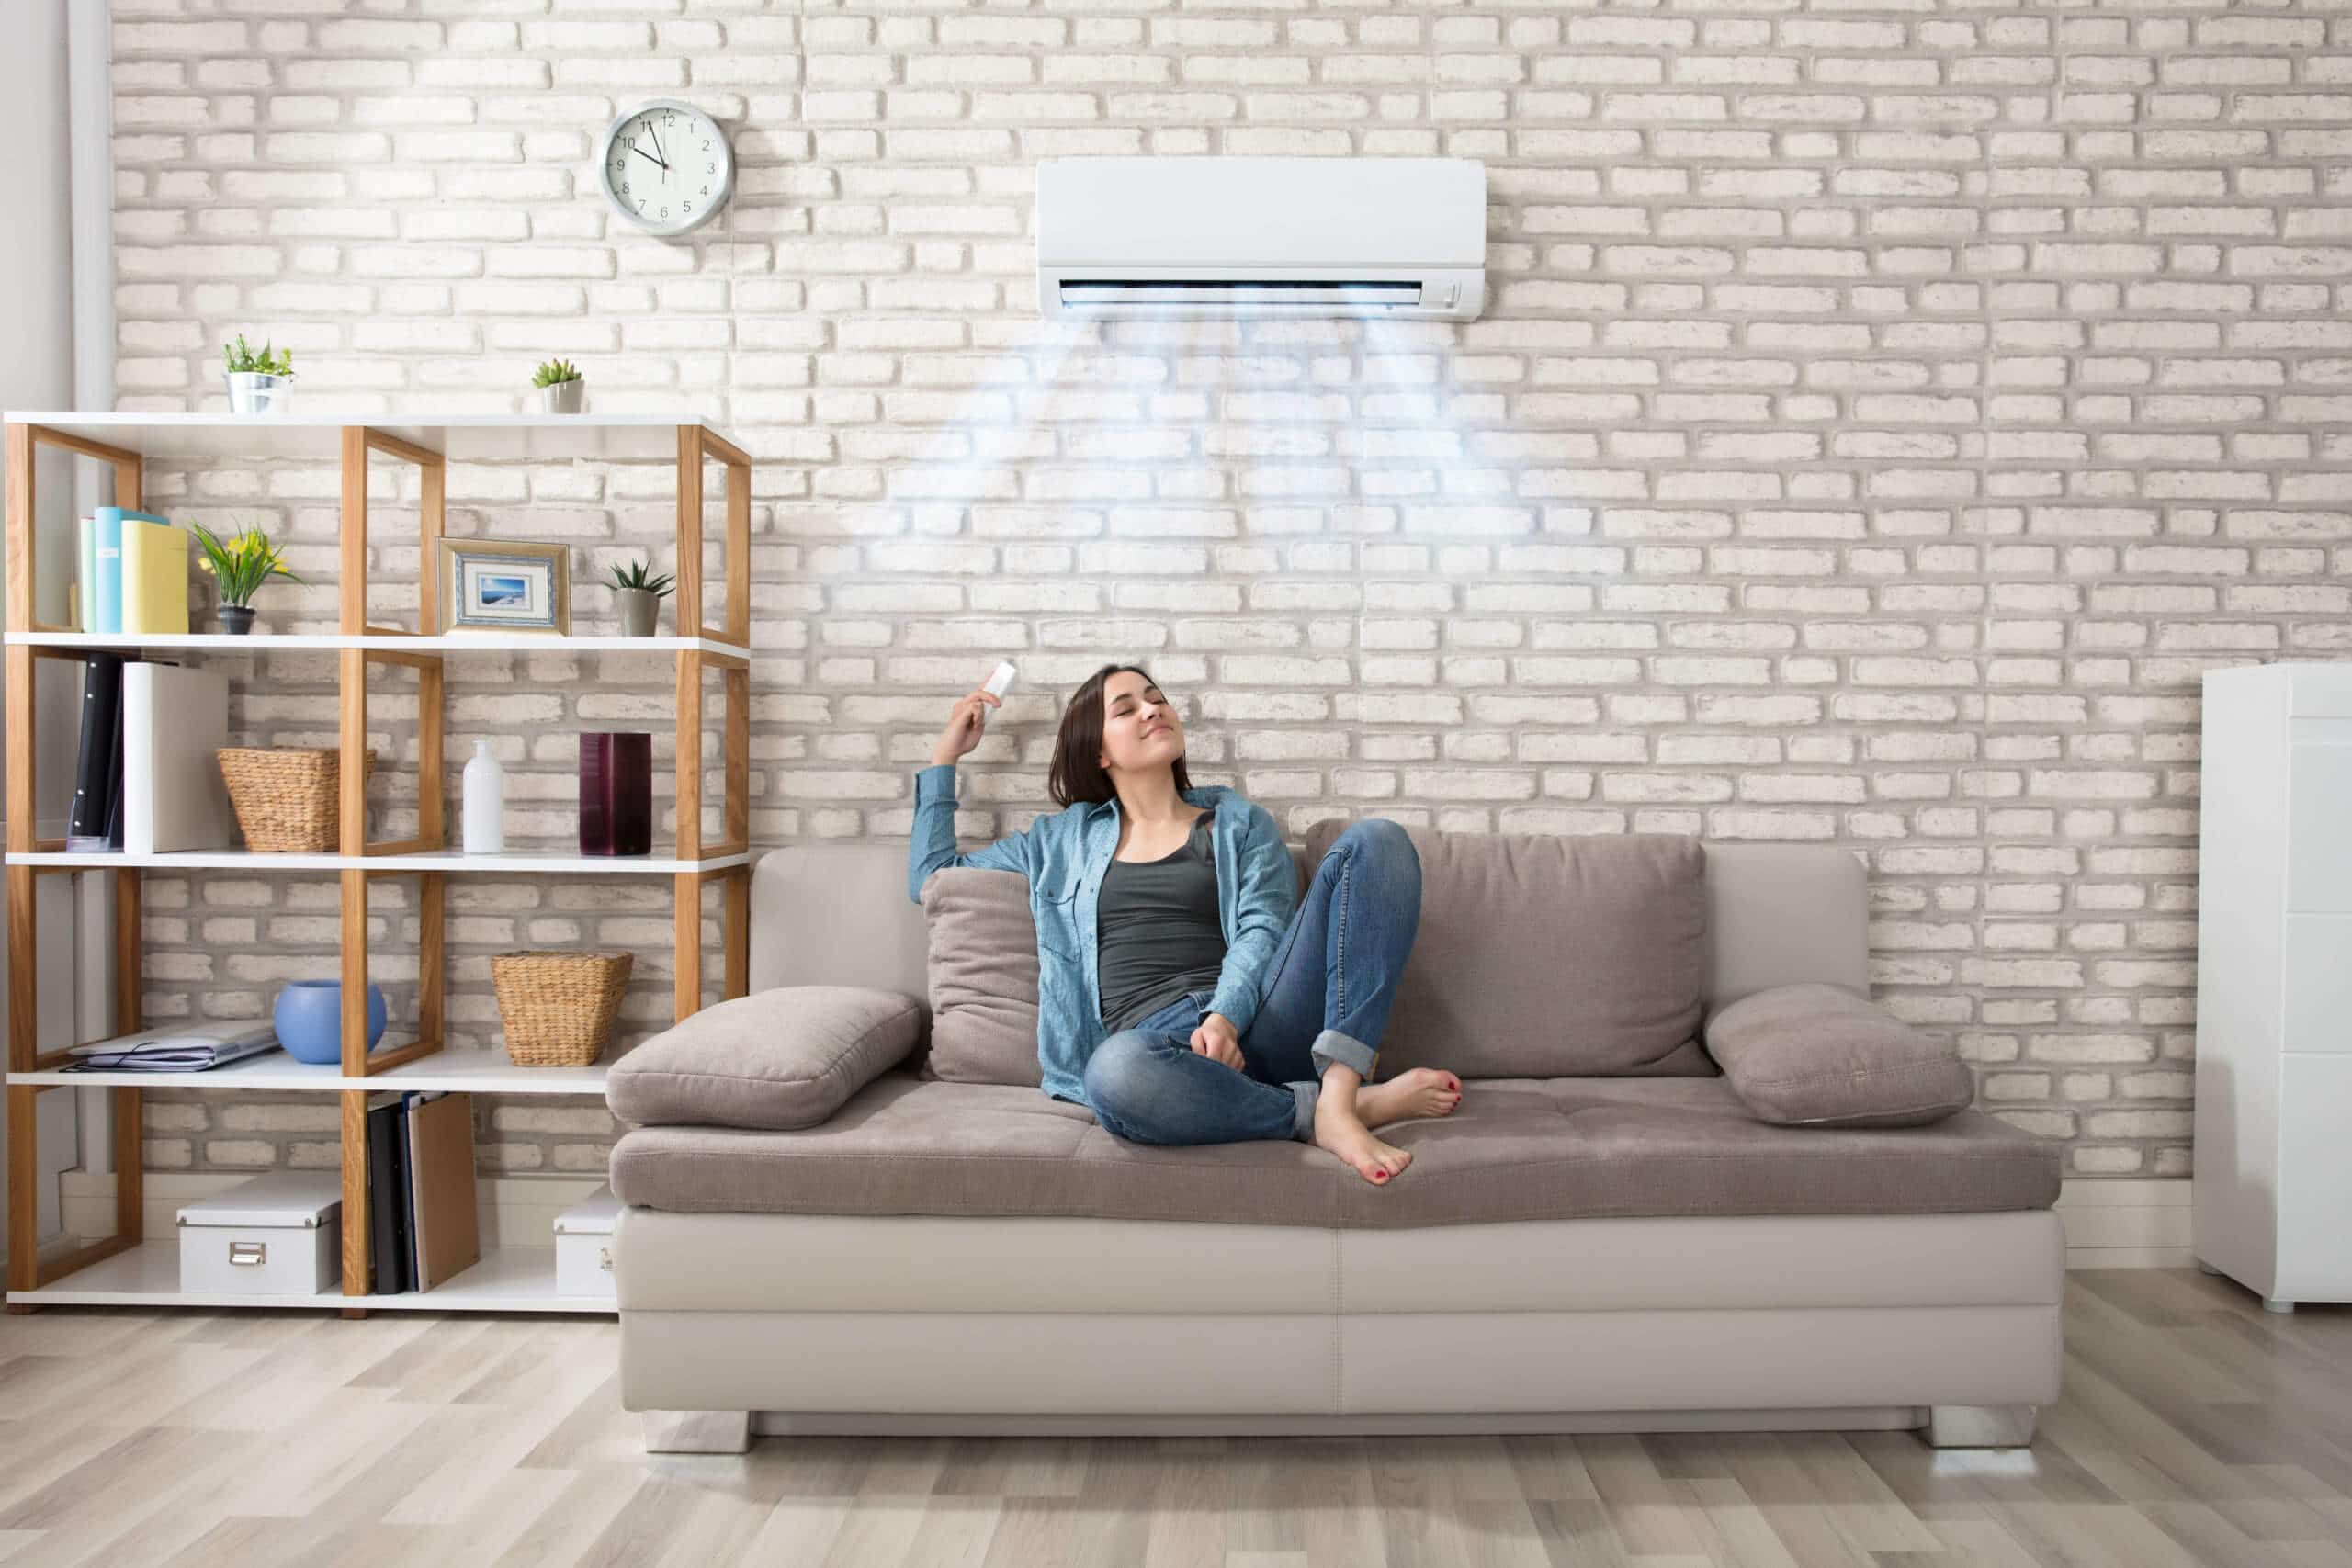 Woman enjoys cool air conditioning in her home